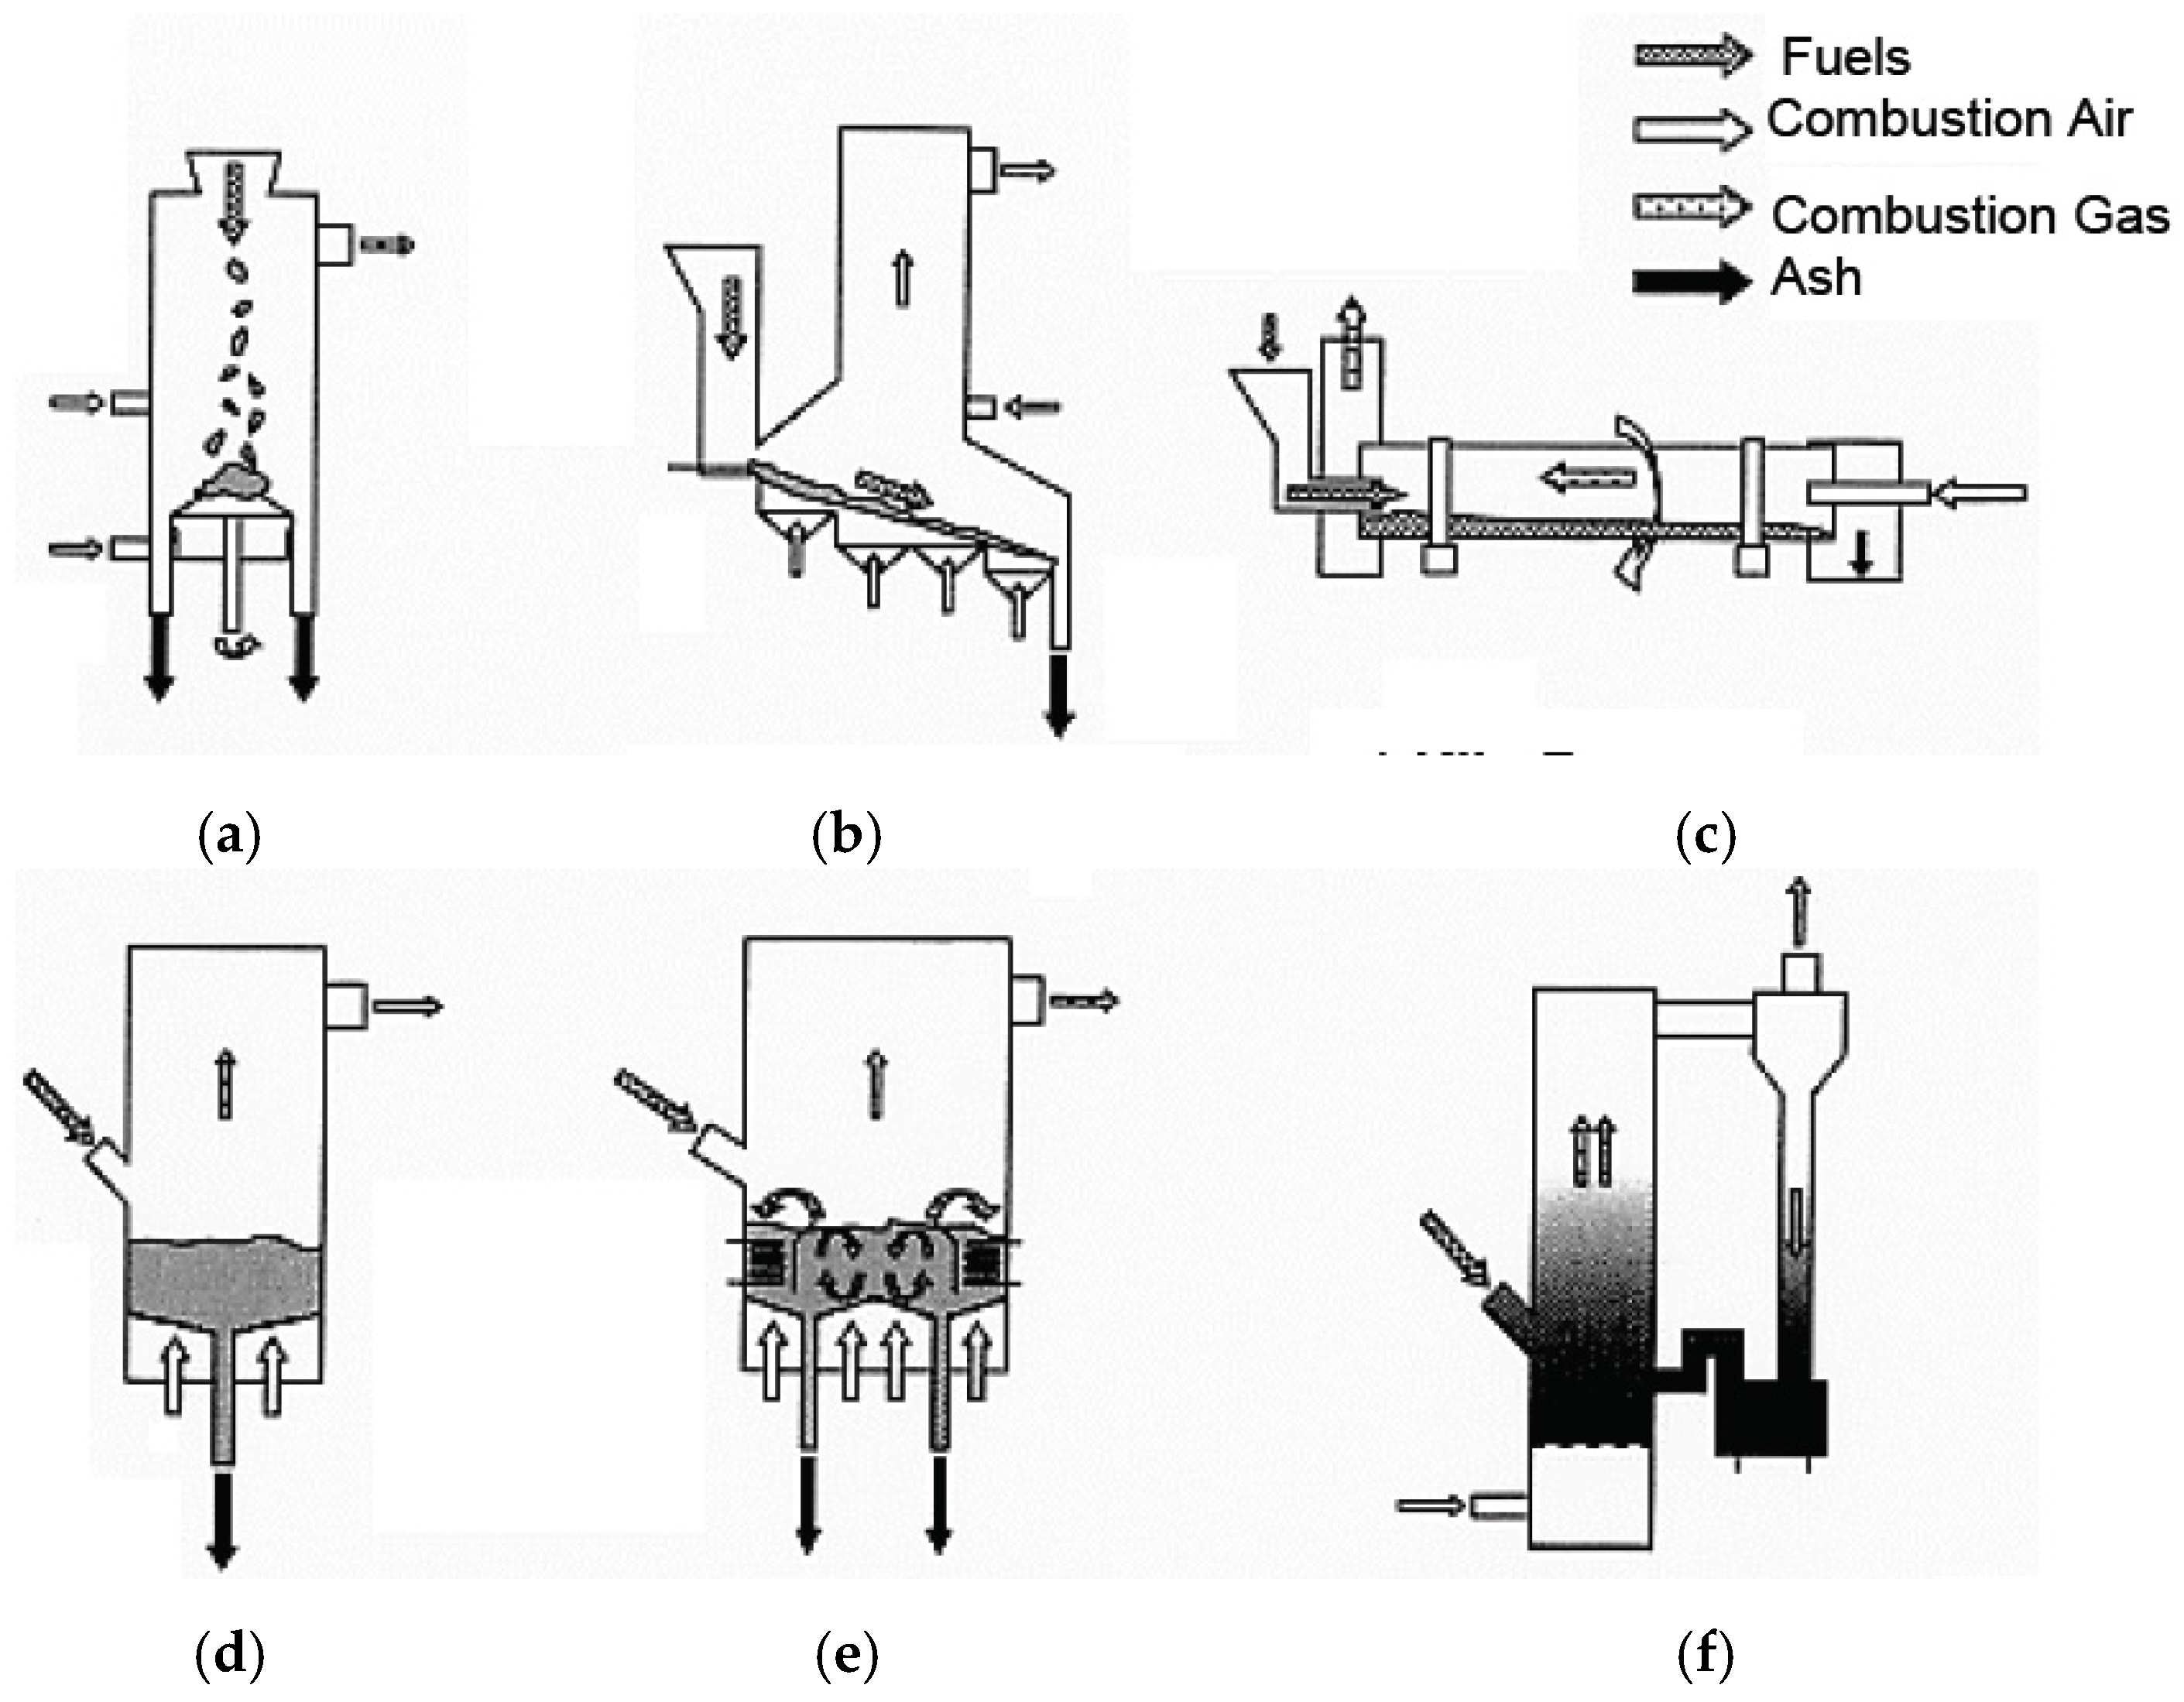 Coatings Free Full Text An Overview On Corrosion Resistant Furnace Moreover Simple Induction Heater Circuit Additionally 06 00034 G001